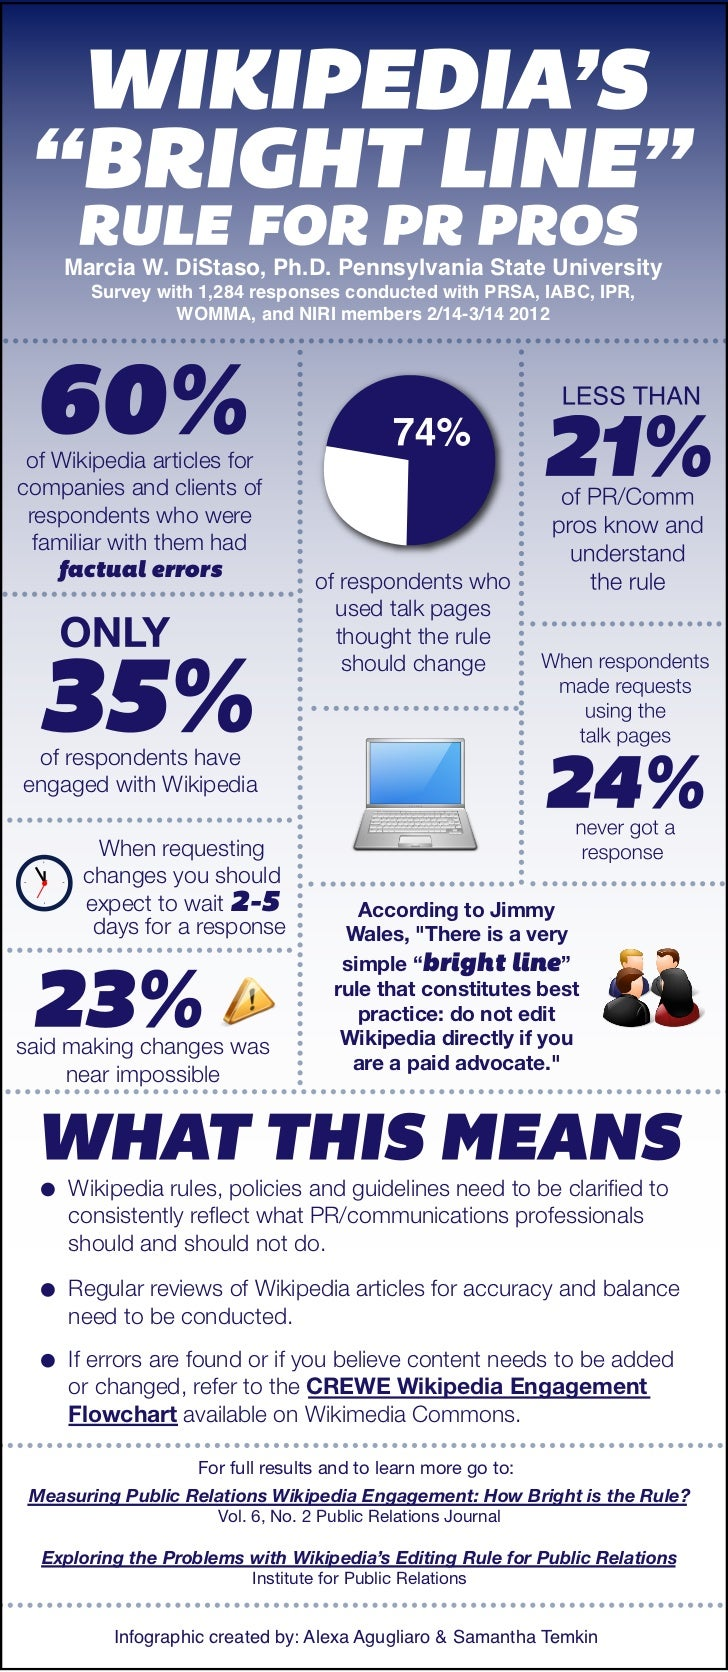 Infographic: Measuring PR Pros' Engagement with Wikipedia